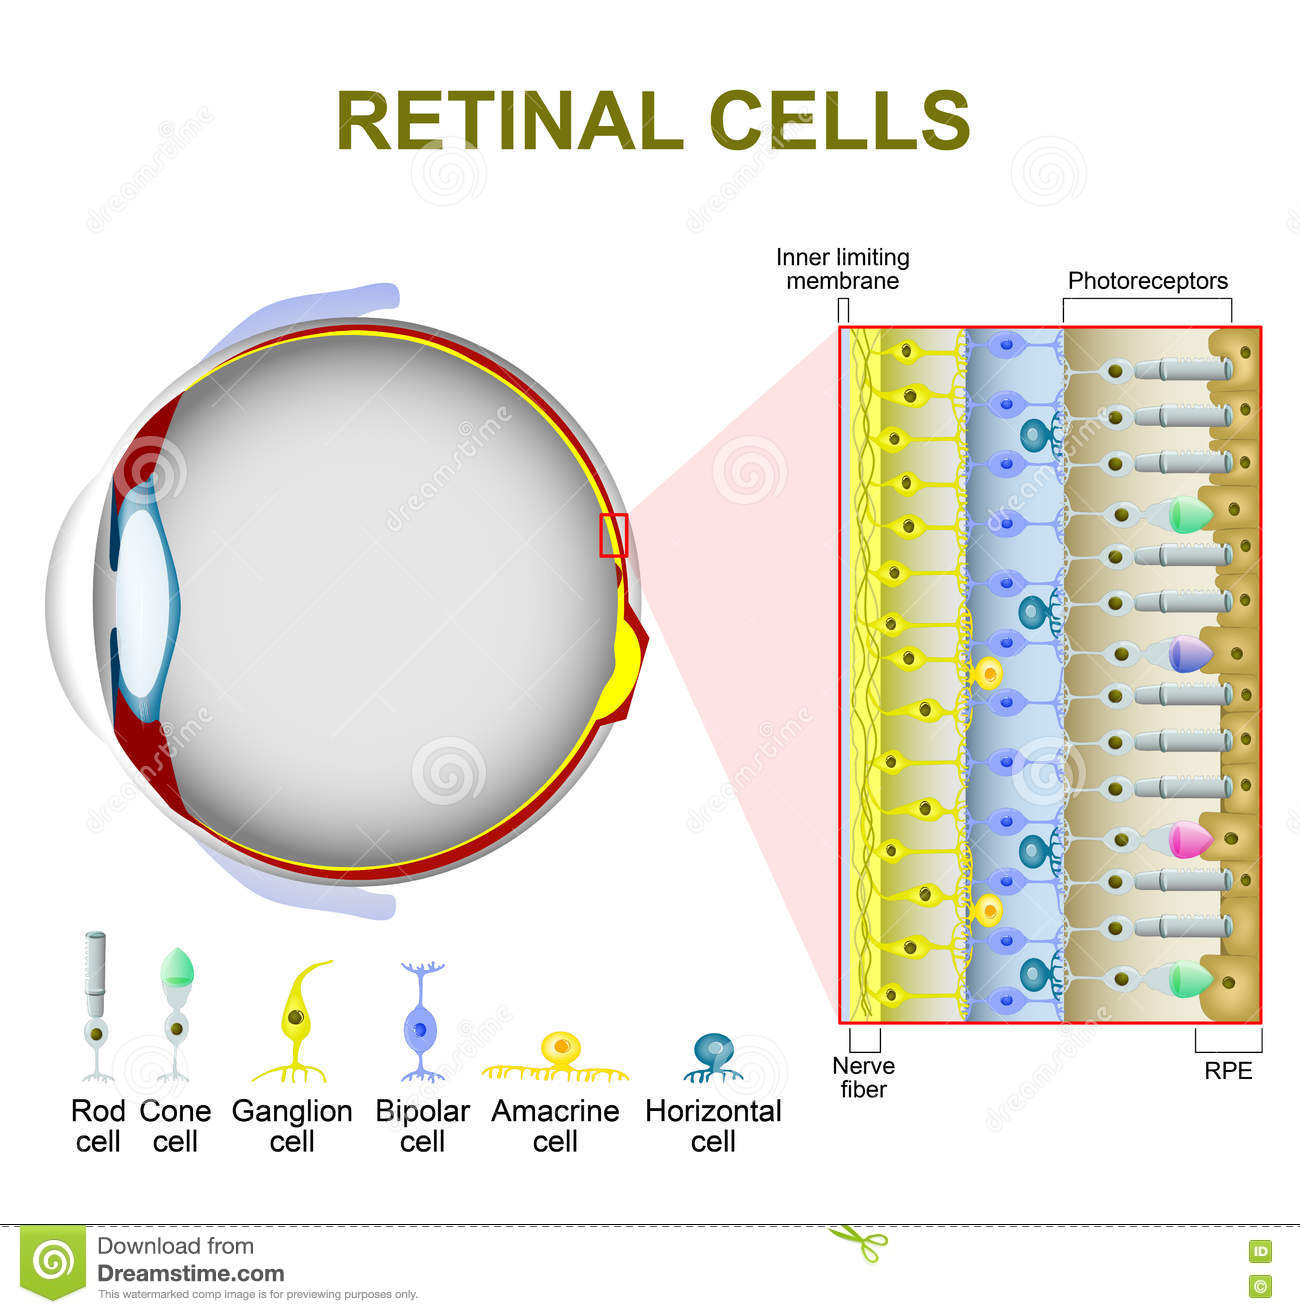 hight resolution of photoreceptor cells in the retina of the eye retinal cells rod cell and cone cell the arrangement of retinal cells is shown in a cross section